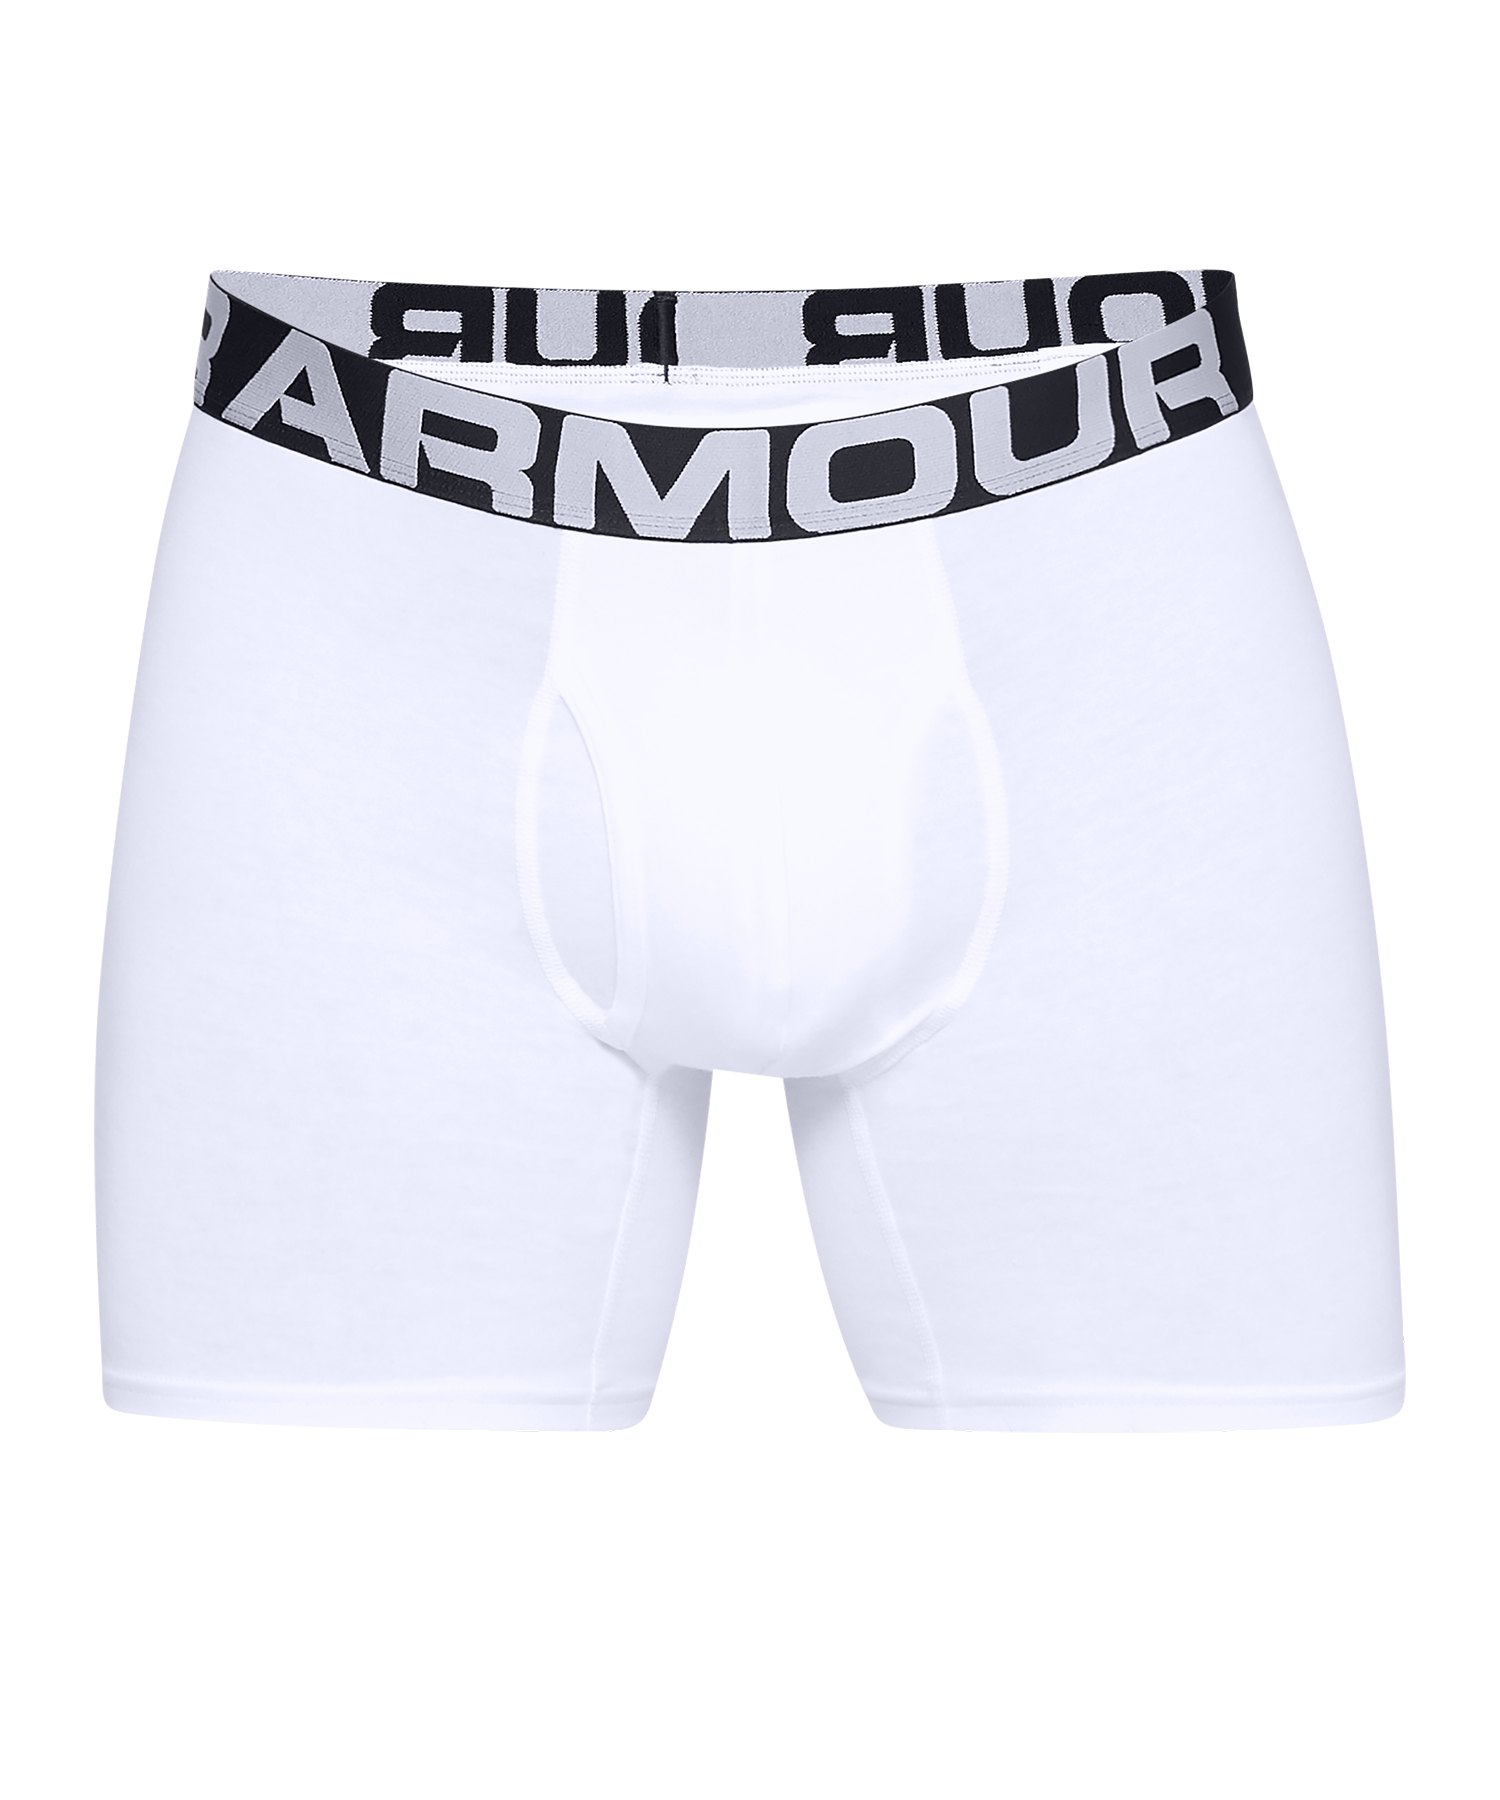 Under Armour Charged Boxerjock Short 3er Pack F100 - weiss